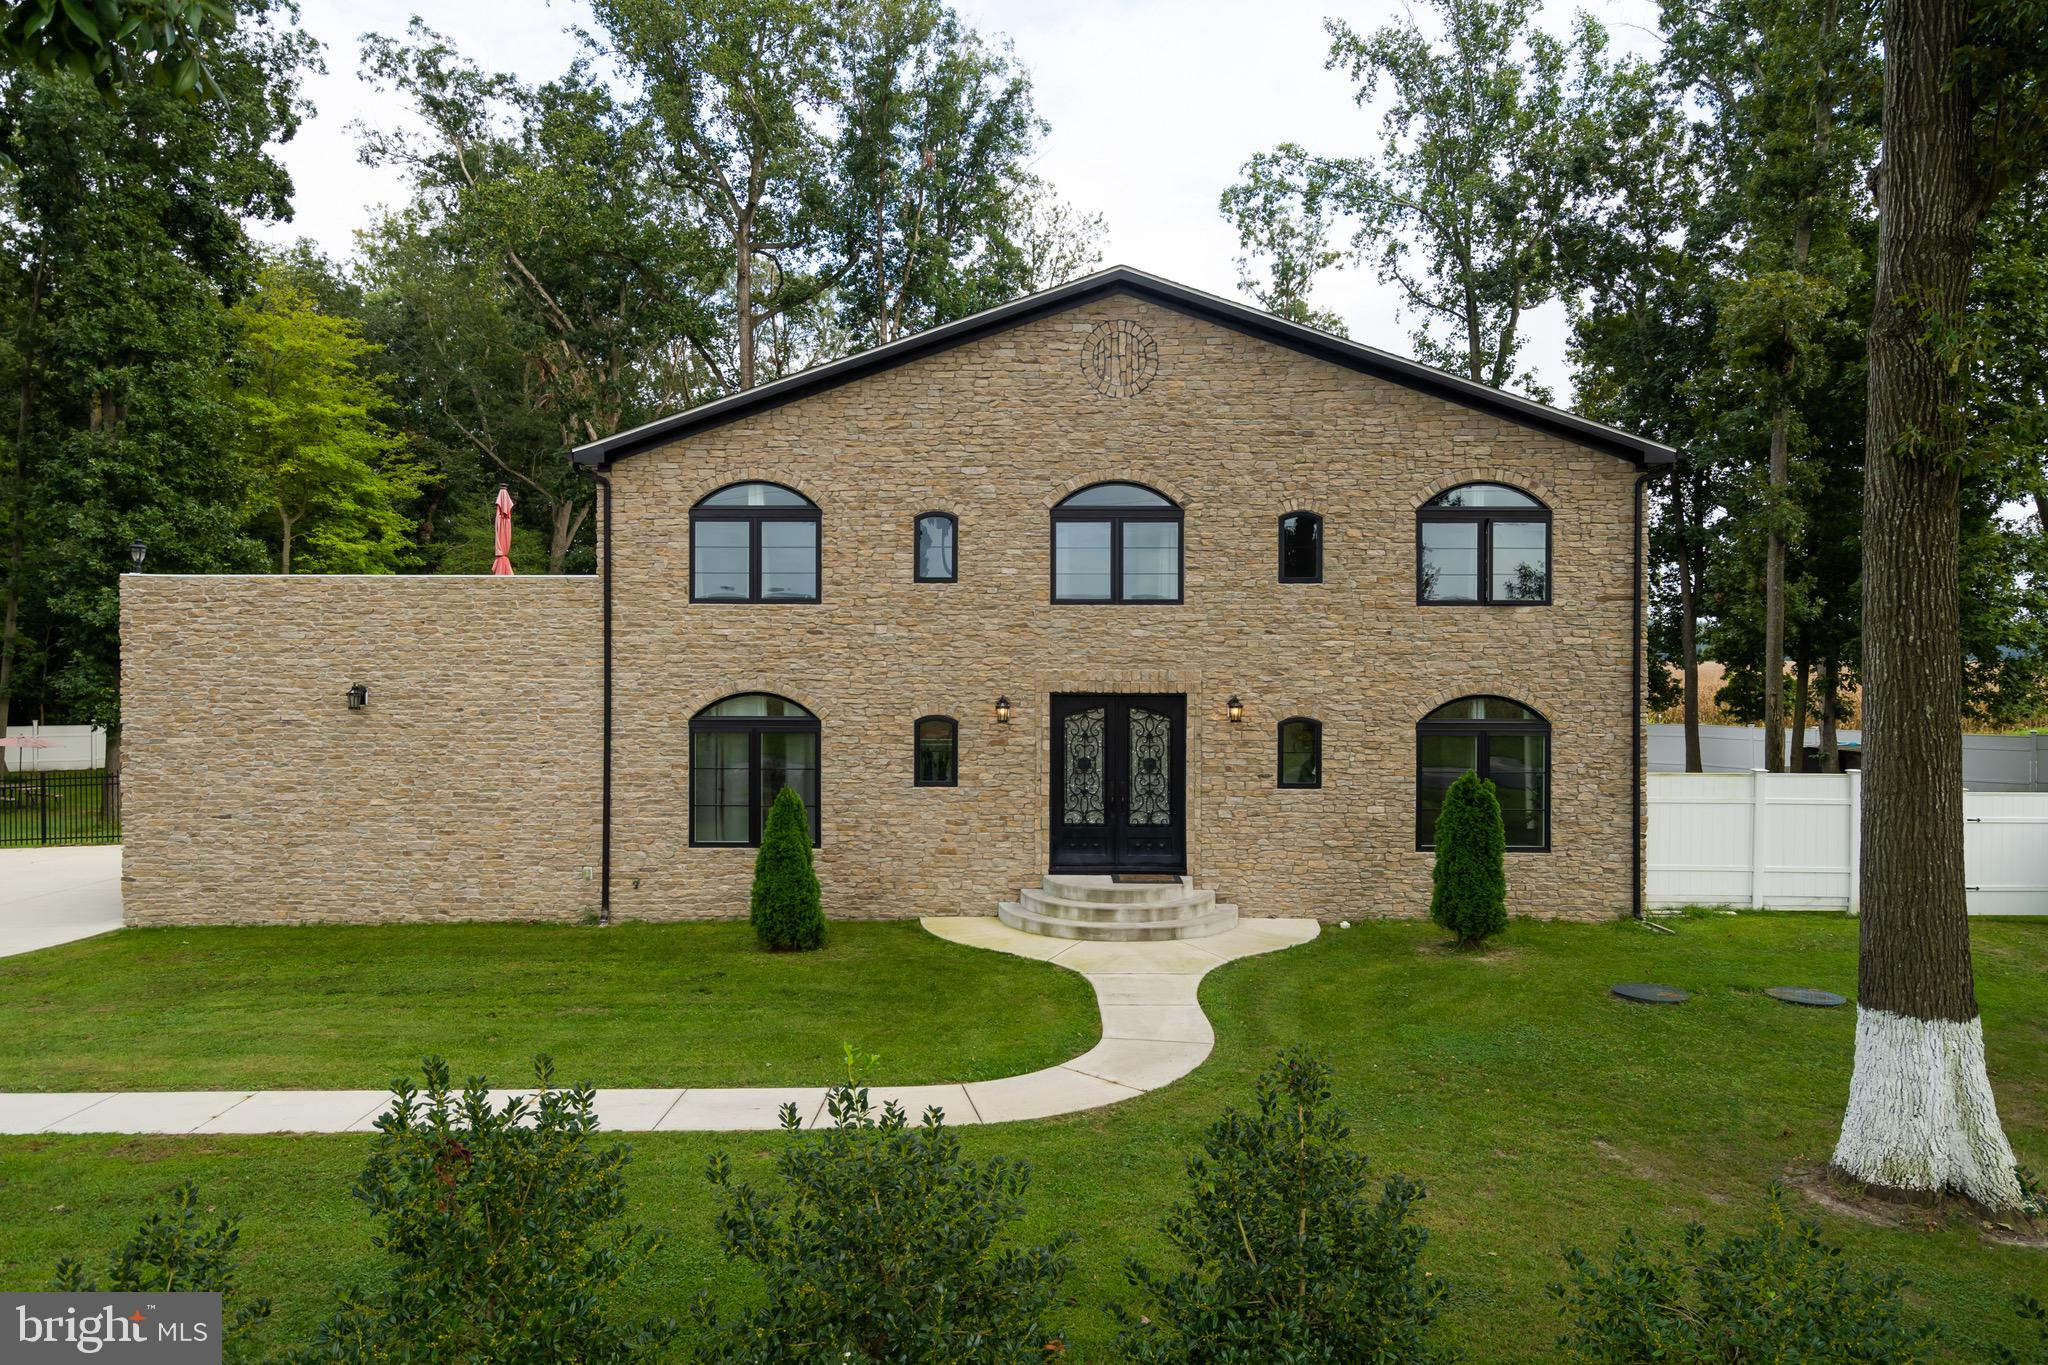 Magnificent Mediterranean-style home in Milton! Set on 1-plus acre of lush, well-groomed property just on the outskirts of historic Milton is this impressive custom-built 3BRs/2 ½ bath over 2,600 sq. ft. stone home. Built in just 2017 this young-aged home is replicated from homes in Spain, and boasts stone exterior, arched windows, and open, sun-drenched terraces. Winding sidewalk carves through level front lawn and leads to circular steps and open entry. Cone-shaped evergreens anchor either side of front porch. Grand wrought-iron filigree doors with bordering windows grant access to ceramic tile foyer and wide-open space, where bench or hutch is certainly at home and rich, turned staircase is just beyond. Enjoy sprawling main space living in this exceptional home. 2-story great room is extraordinary with its massive floor-to-ceiling Northern eastern cedar gas FP, where all can gather for pre-dinner snacks and post-meal chats. Elongated windows flank FP and work in tandem with glass sliders to offer ample natural light. Room size is substantial and allows for easy placement of plentiful furniture and accessories. DR is just beyond and seamless to great room with glass sliders gracing back wall and beautiful wrought iron chandelier commanding attention. DR is completely linked to chef's kitchen where all is at one's fingertips! Ceramic tile floor grounds the room while subway tile backsplash is breathtaking backdrop for smooth maple cabinets. Upgraded countertops are perfectly paired with SS appliances. Substantial island takes center stage and features wrap around countertops which allows for bar stools to be tucked under, ideal for casual snack or sit-down meals. Custom light fixtures bathe this gourmet kitchen in luxury! Barely-there pocket doors with frosted glass inset grant access to charming, sun-infused retreat area of rich hardwood floors. The combination of oversized windows, glass sliders and arched windows together create sunroom effect with natural light